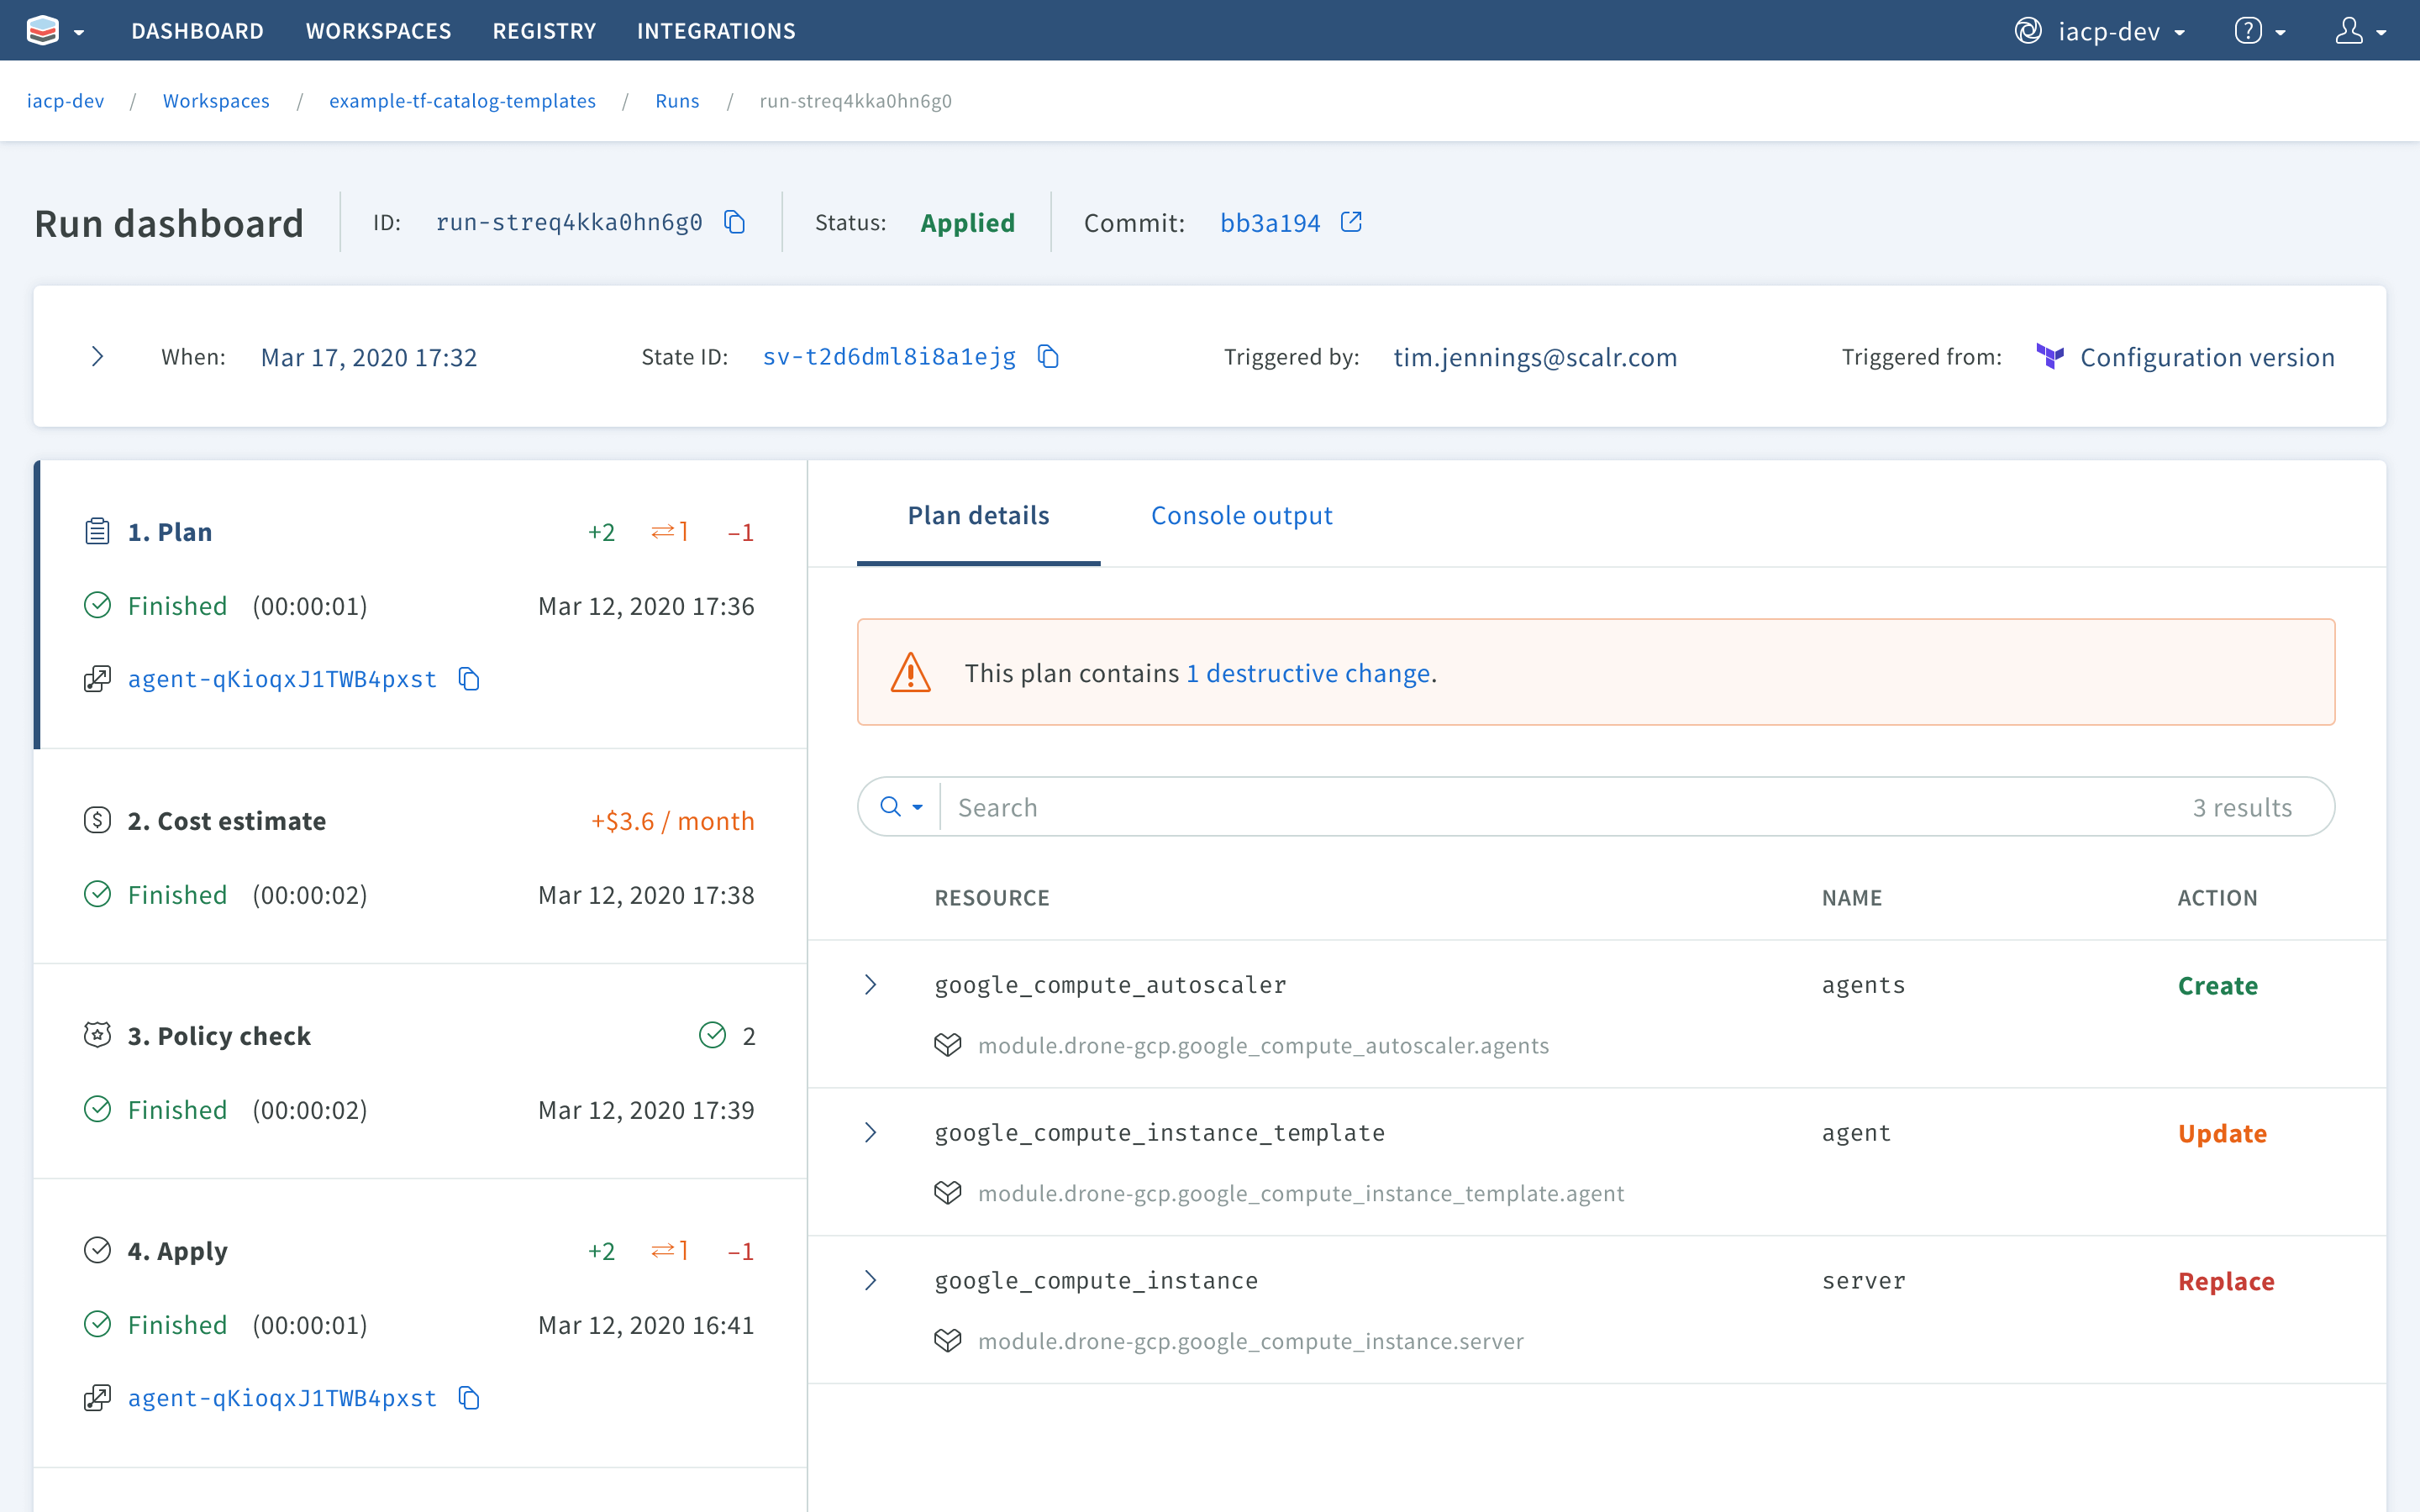 New Feature: Smart Plan Outputs